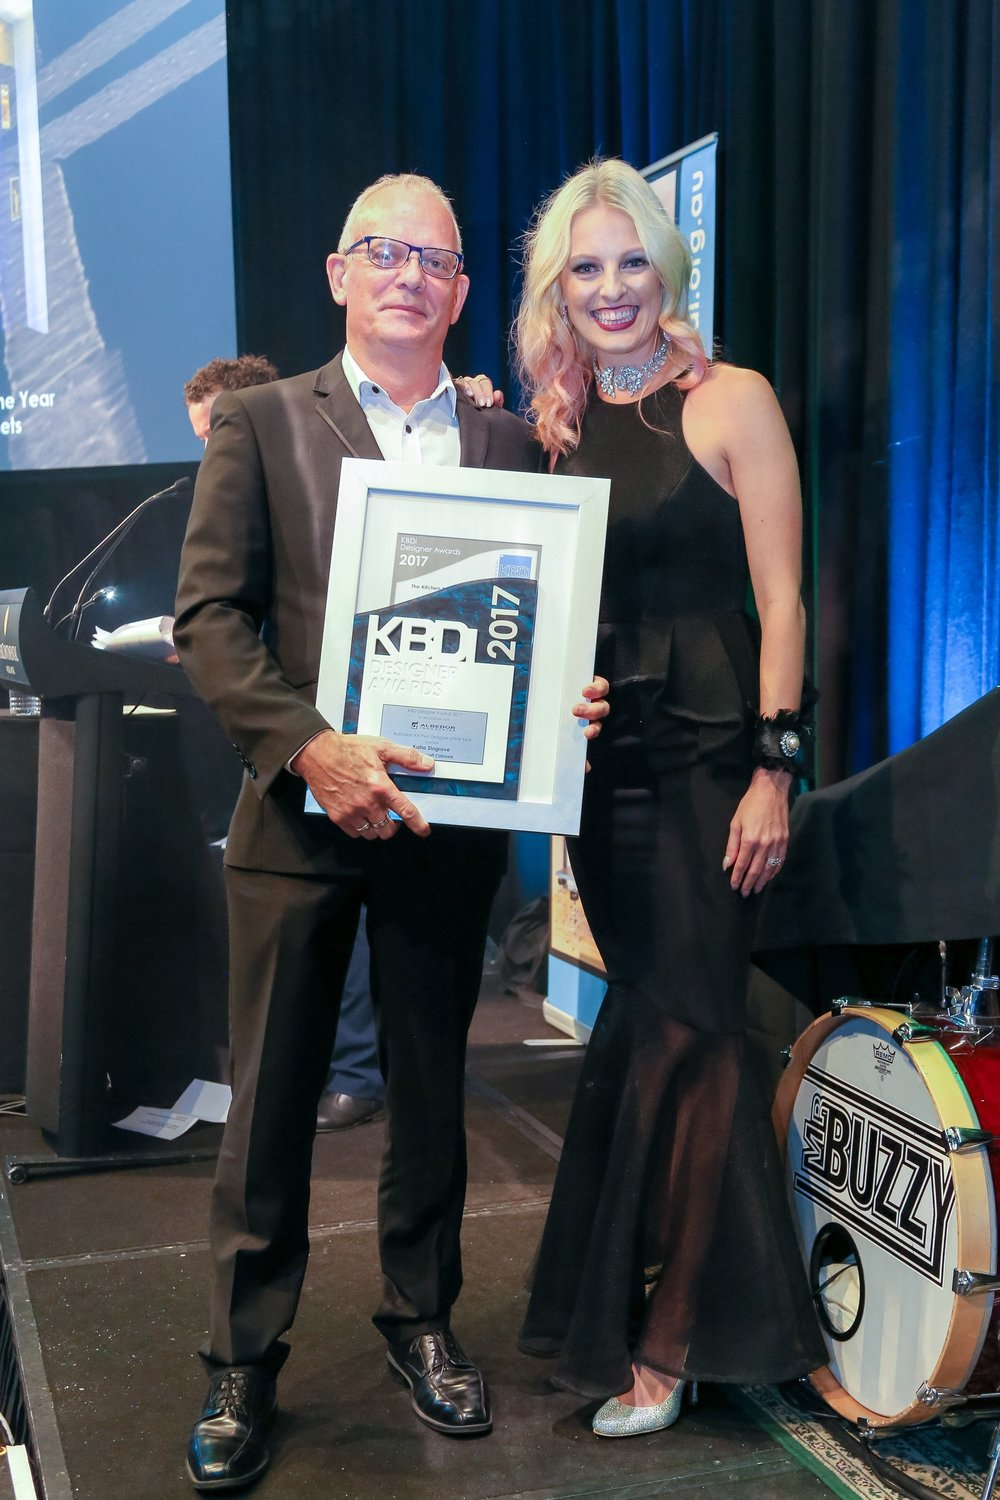 KBDI 2017 Winner - Designer of the year - Katia Slogrove